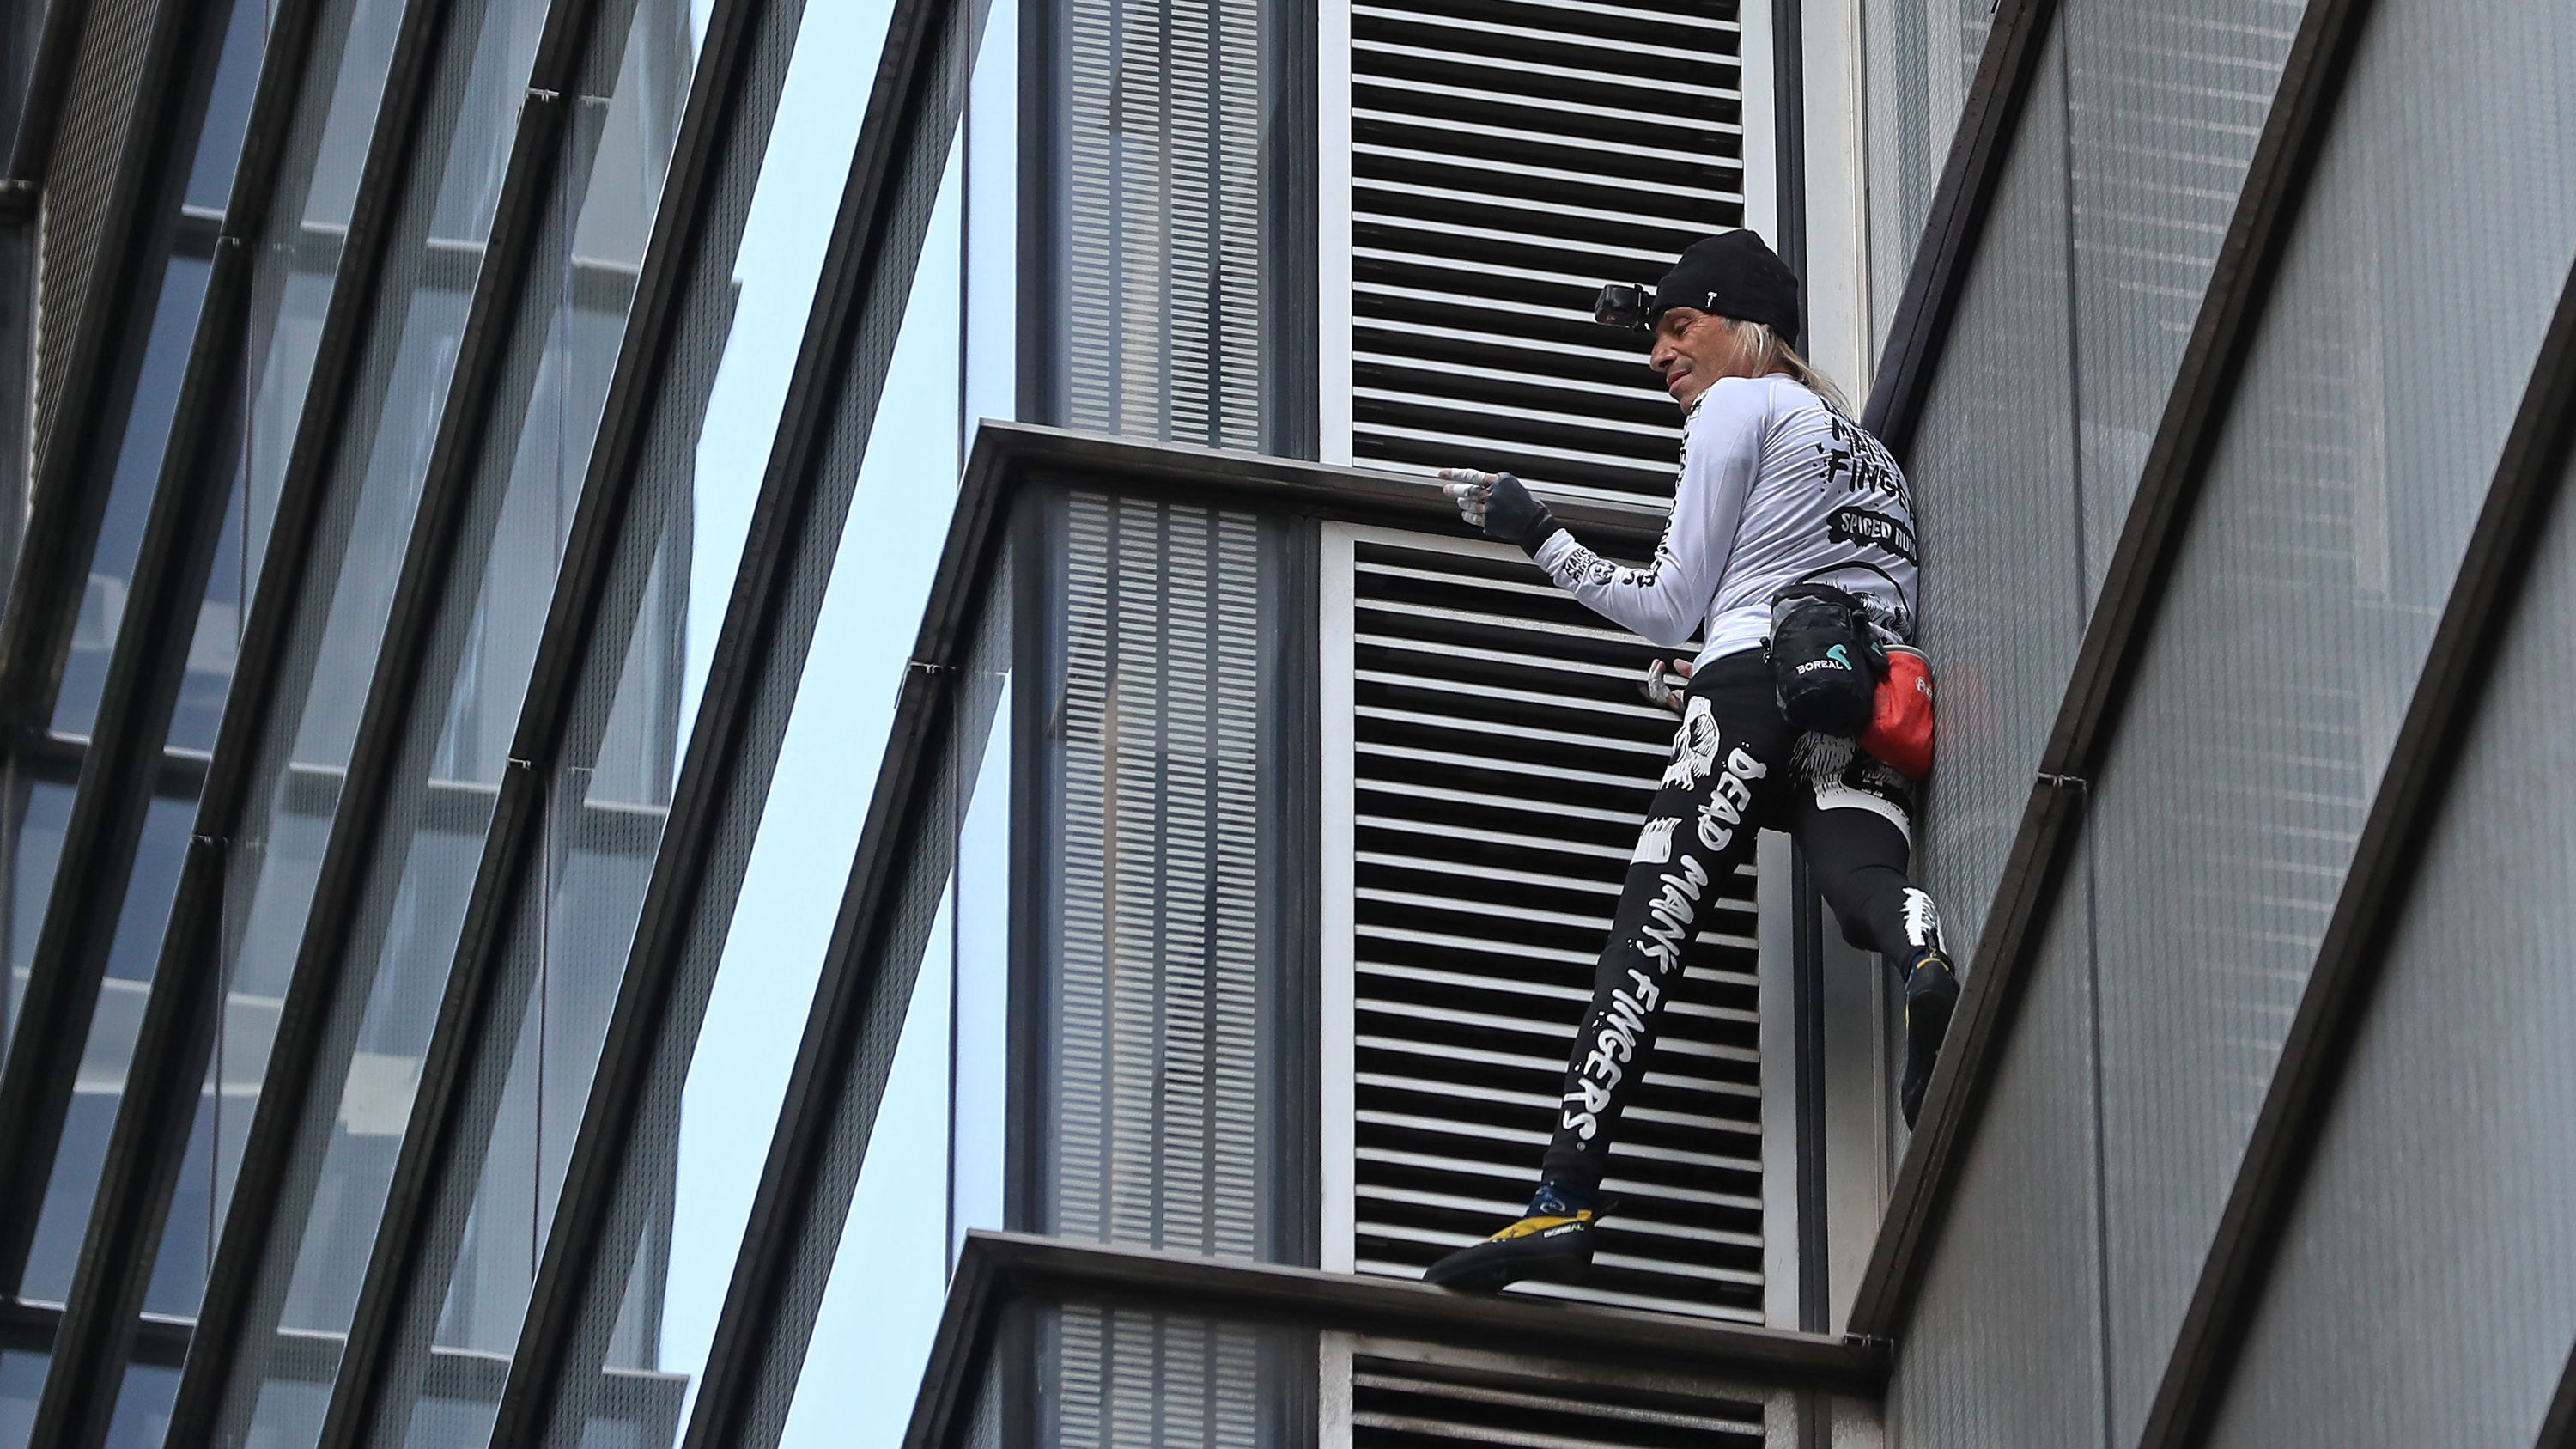 Chalet Leal French Spiderman Climbs London Skyscraper